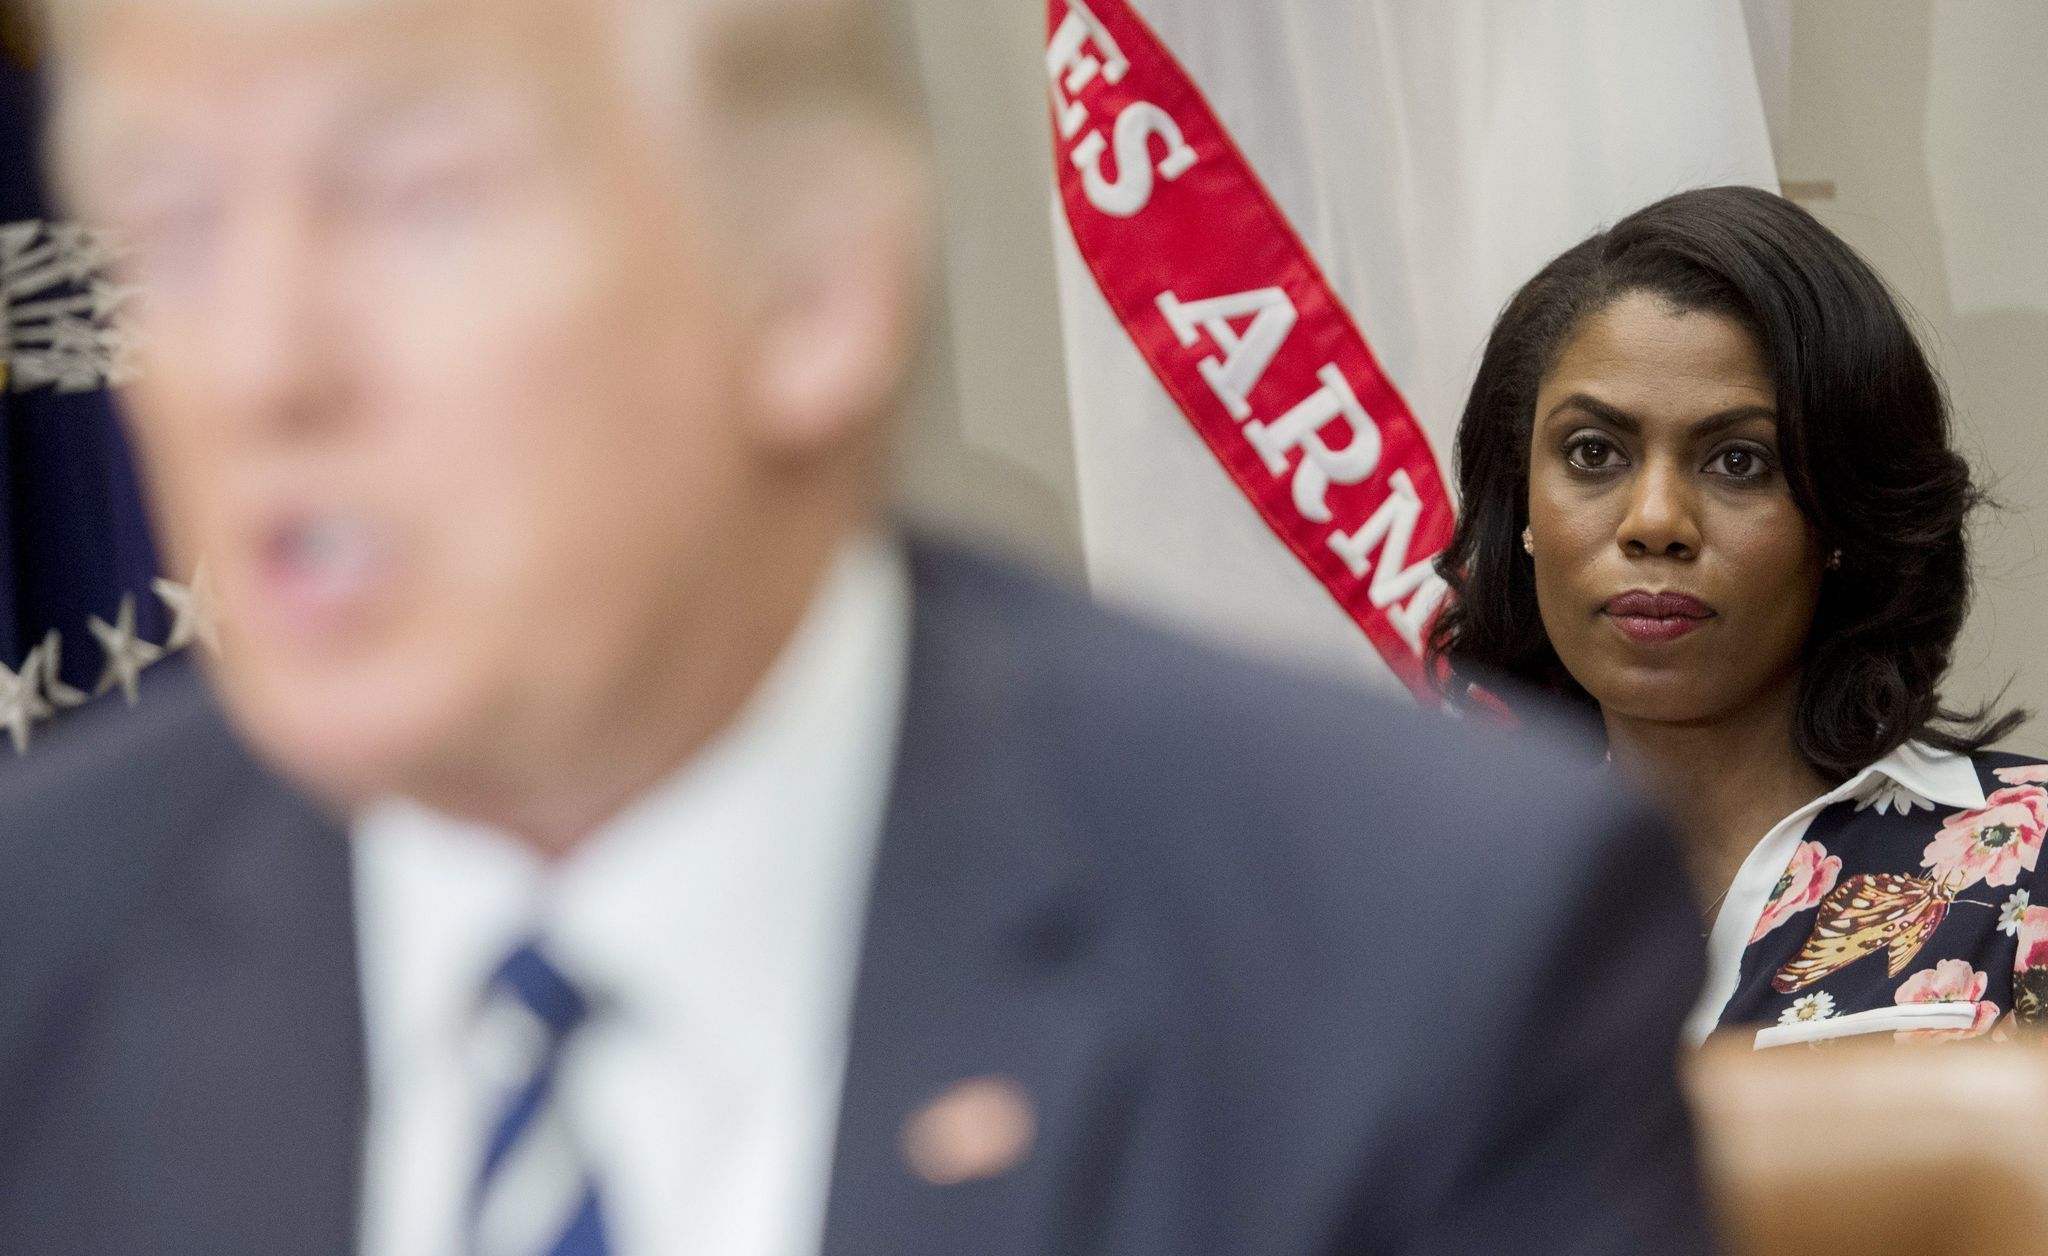 As Omarosa continues to promote her tell-all book, Trump lashes out, calling her 'that dog!'